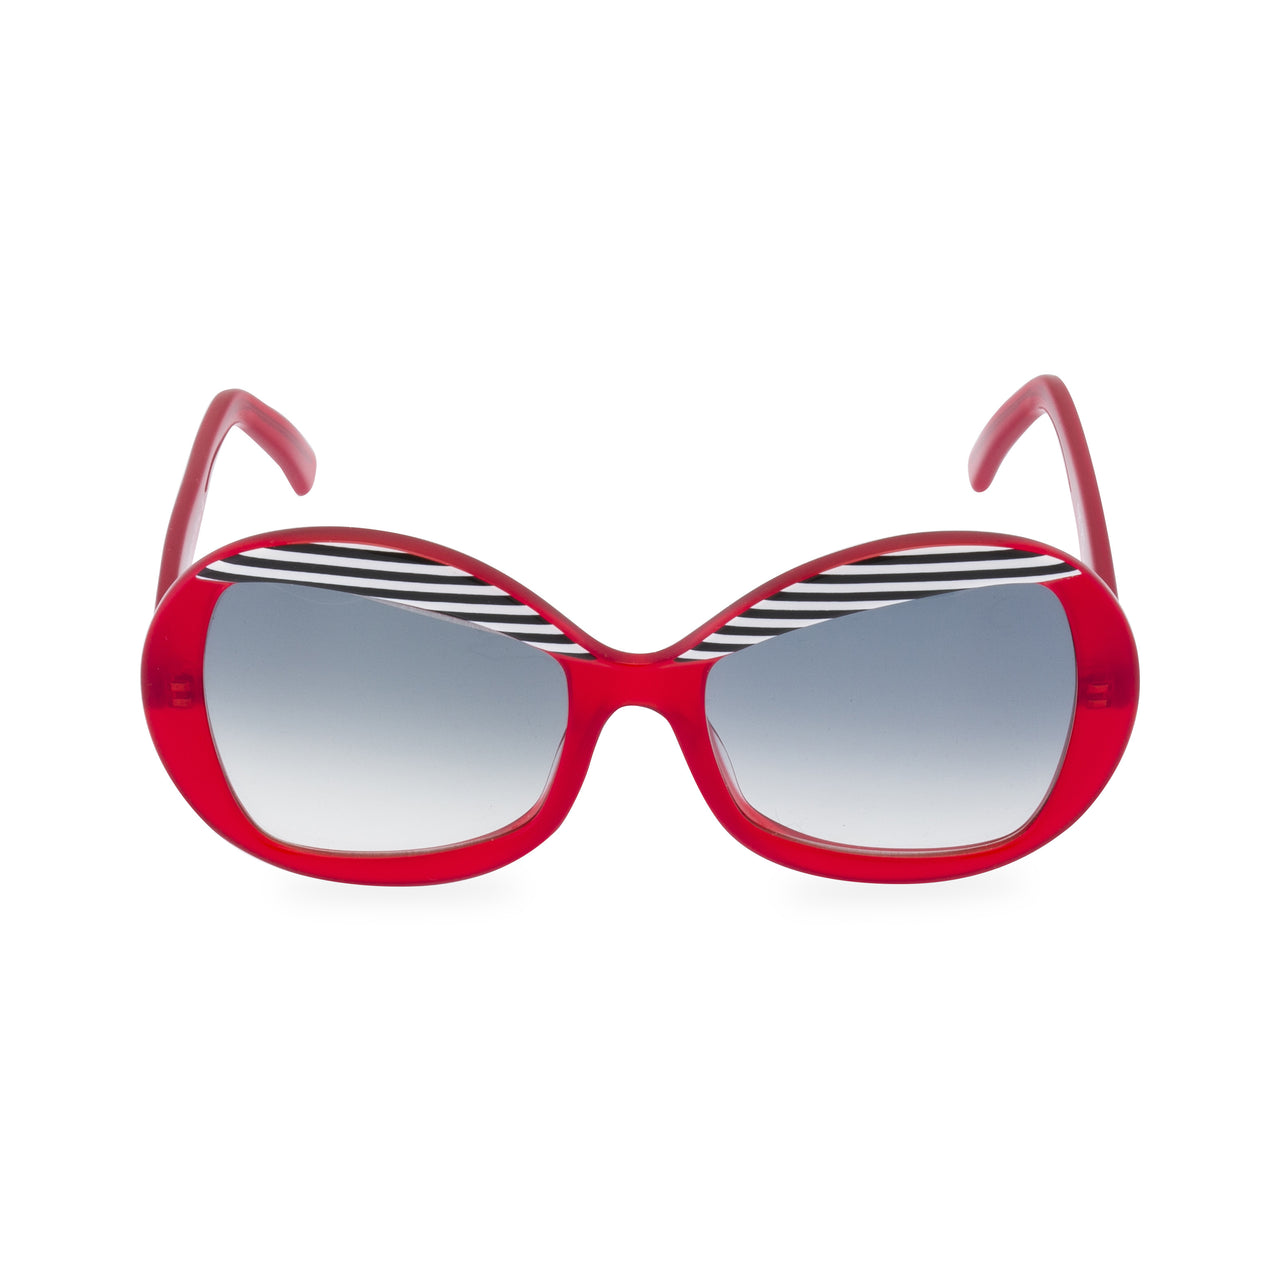 Francois - Sunglasses Red / Black Stripe